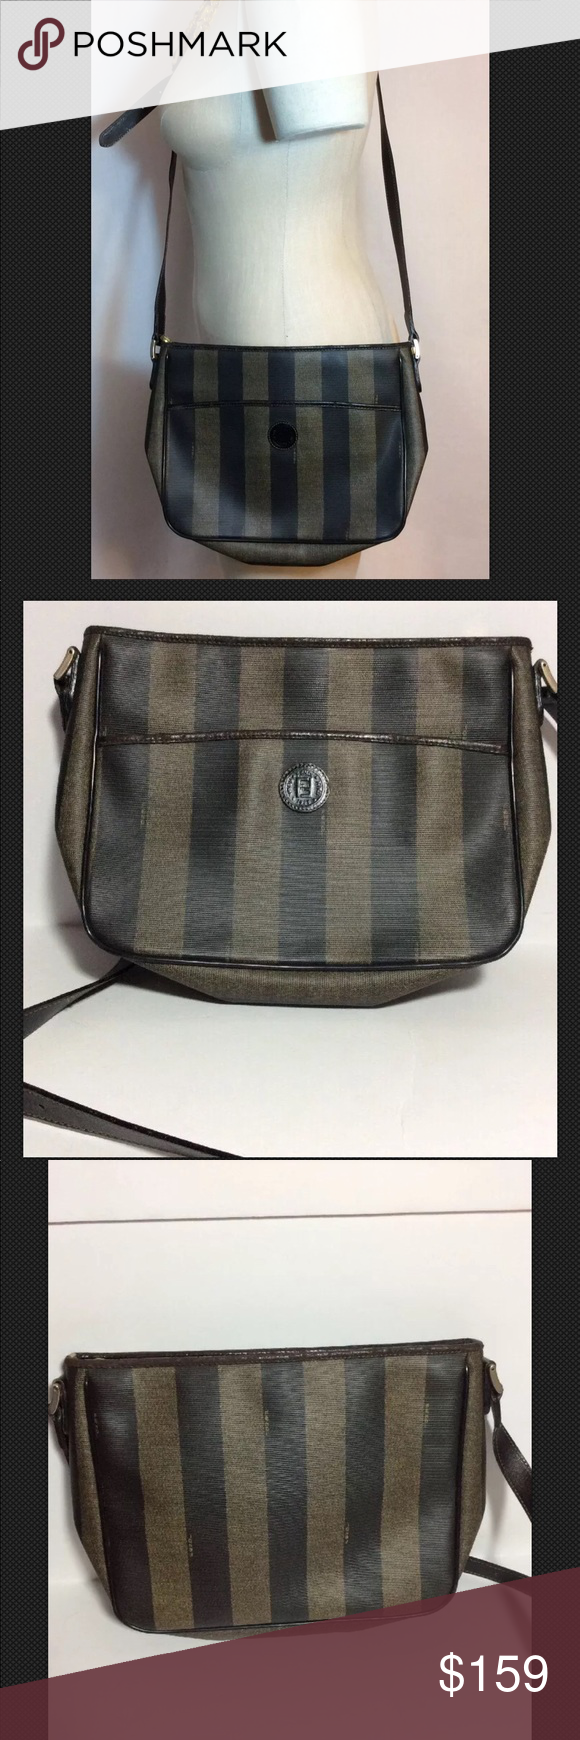 313549d72f0b Vintage FENDI Pequin Striped Brown Crossbody Bag Vintage FENDI Pequin  Striped Brown Crossbody Italian Handbag Well